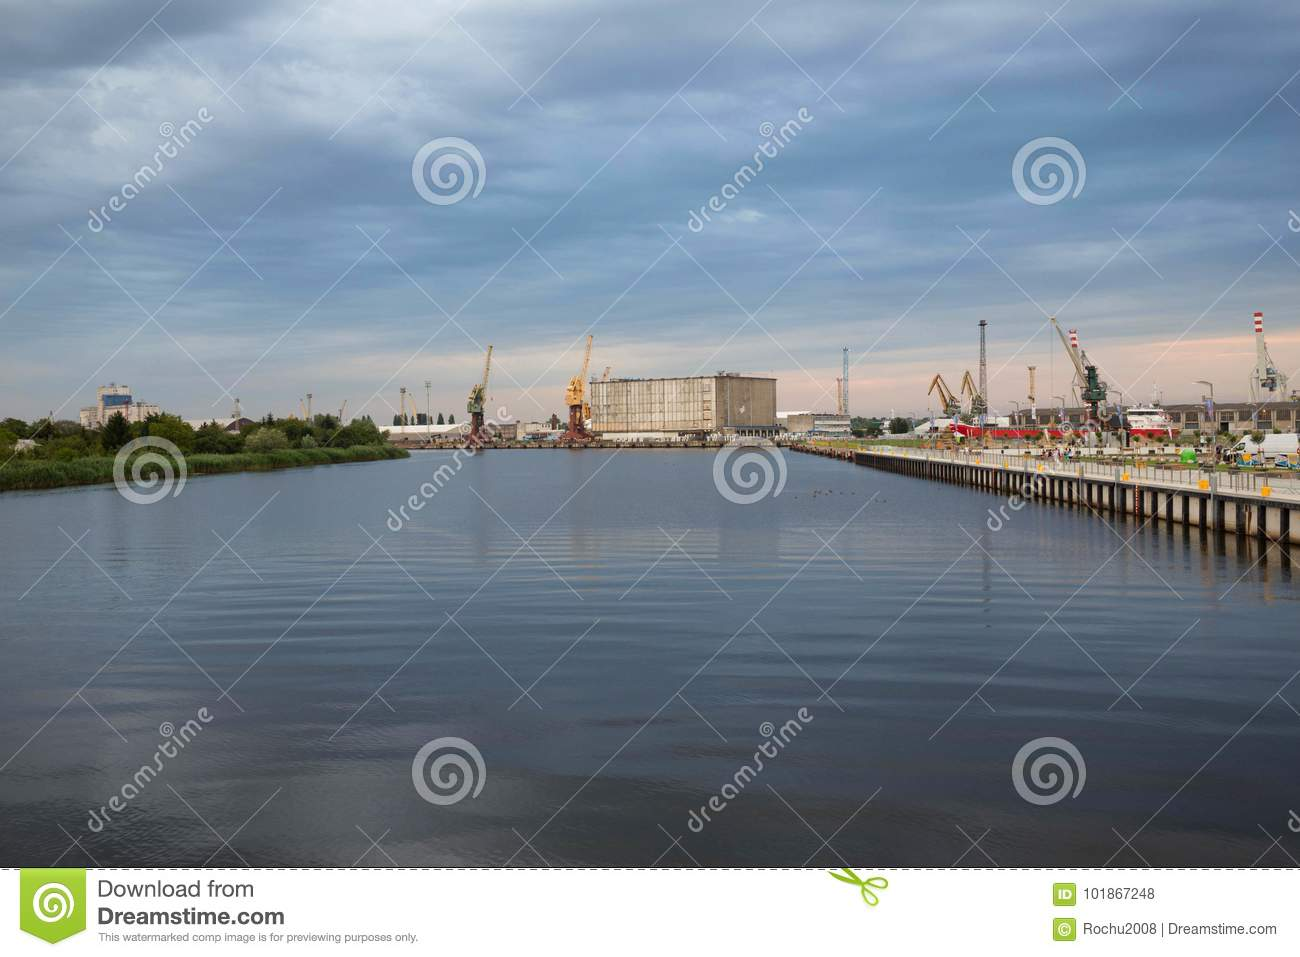 Szczecin in Poland / Waterfront view of the industrial areas of the port